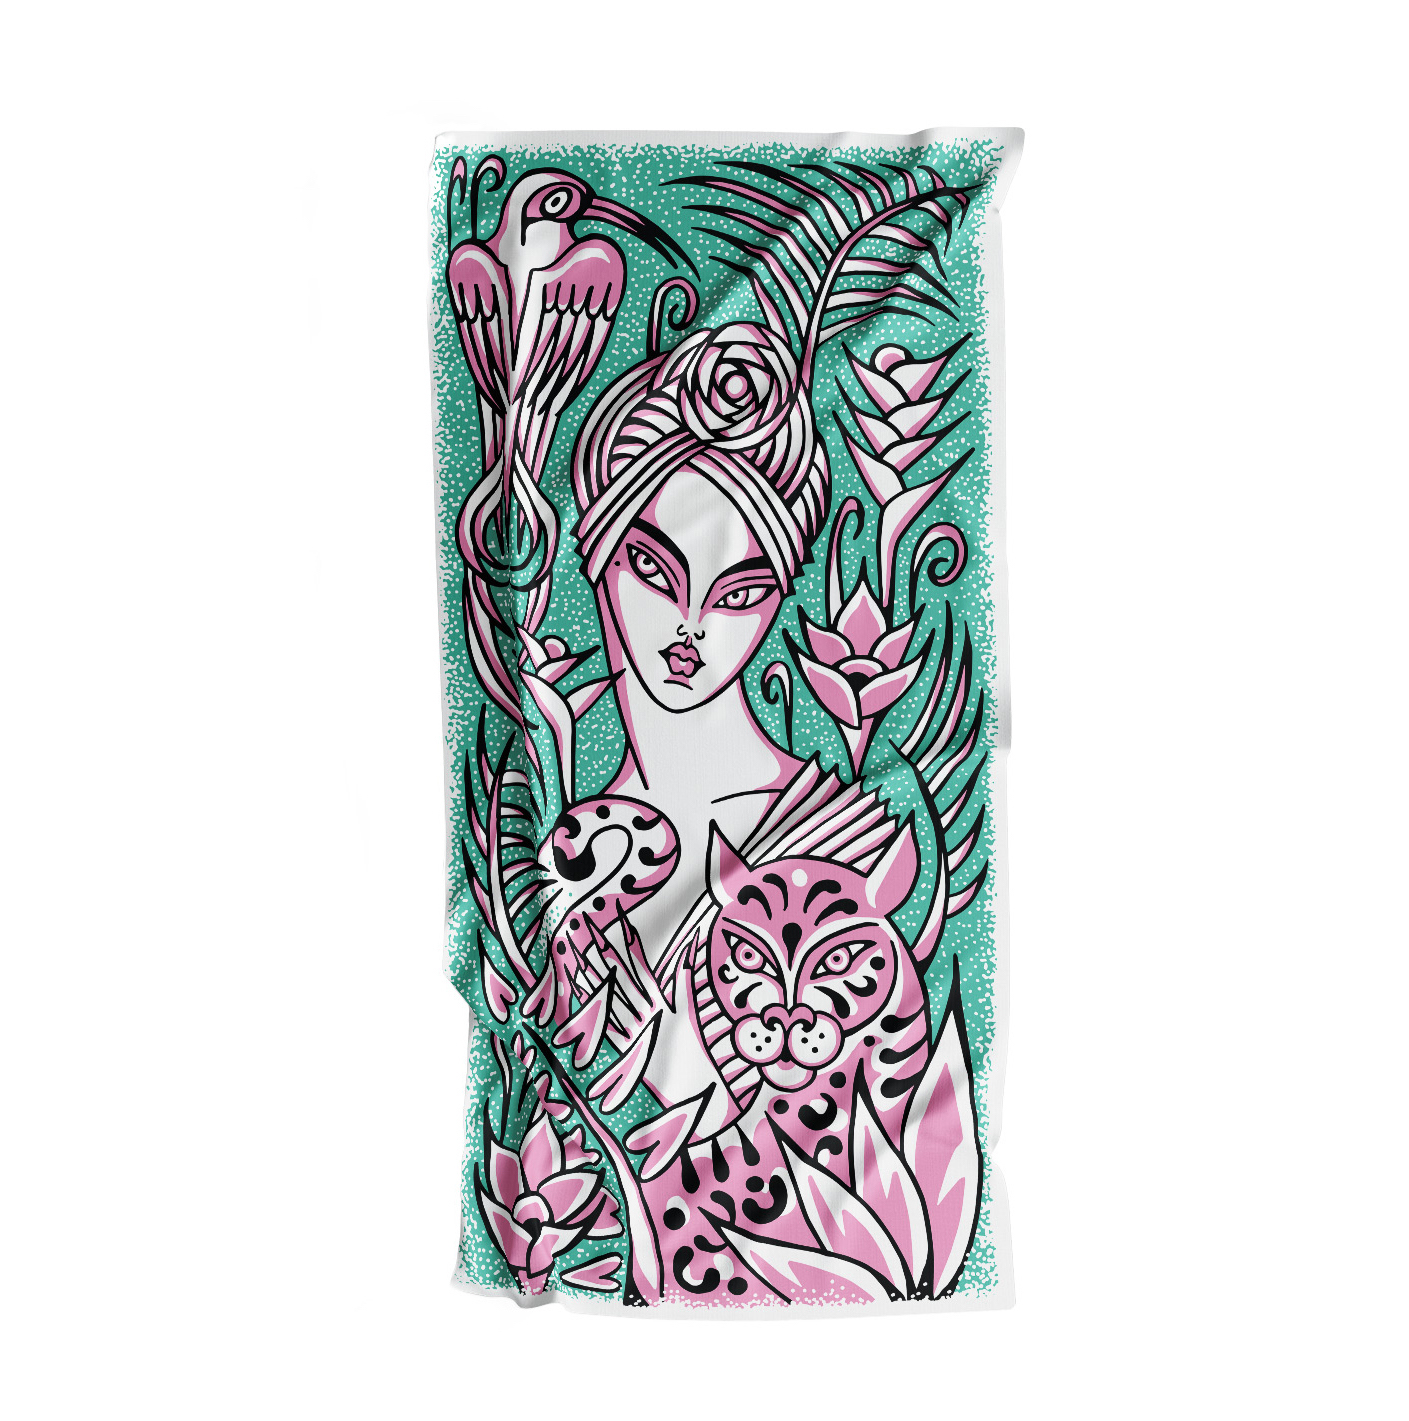 """She's the one with fire in her heart, a wild look in her eyes and scarves for hair.   """"I wanted the turbanista to be calm but powerful, surrounded by jungle animals. I hope this jungle beauty makes you feel fierce."""" – Hannah Truran, aka Sweetmundane"""